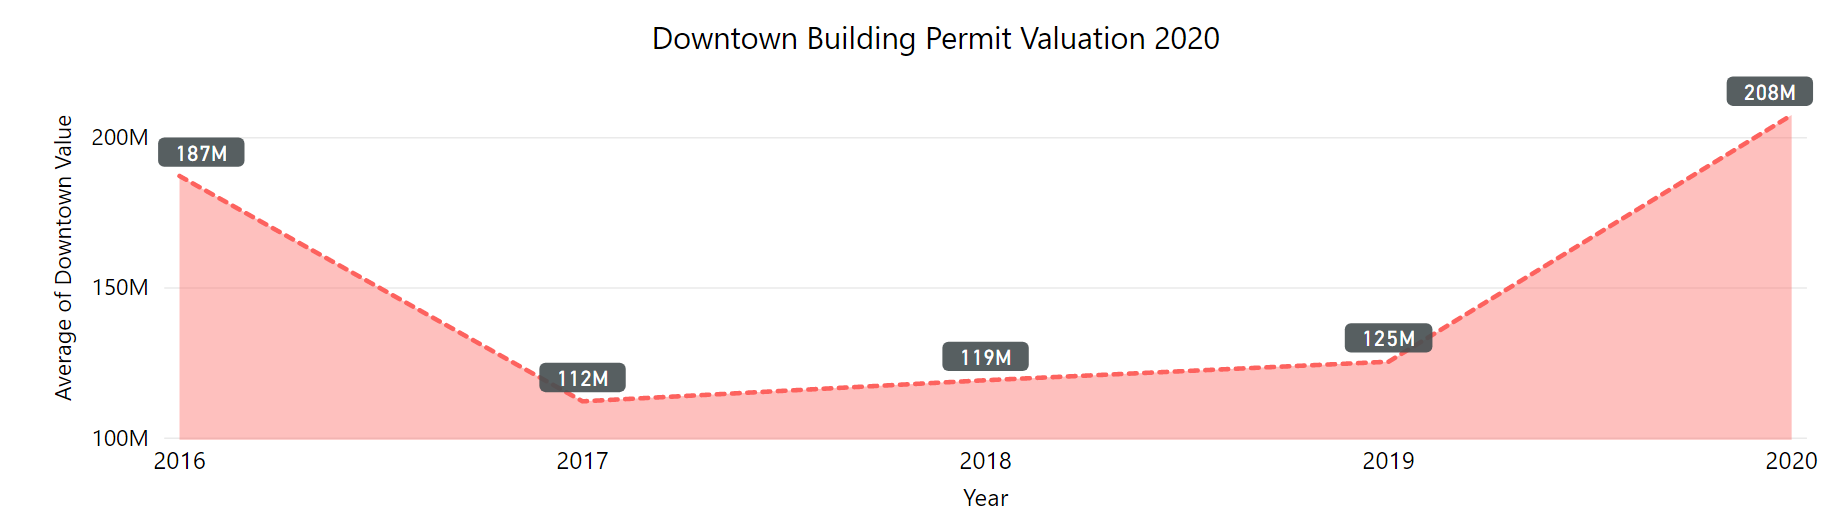 downtown building permit valuation by year 2016 to 2020. $187 million in 2016 dipping in 2017, 18, 19. low point 2017 at $112 million. 2020 increased to $208 million.